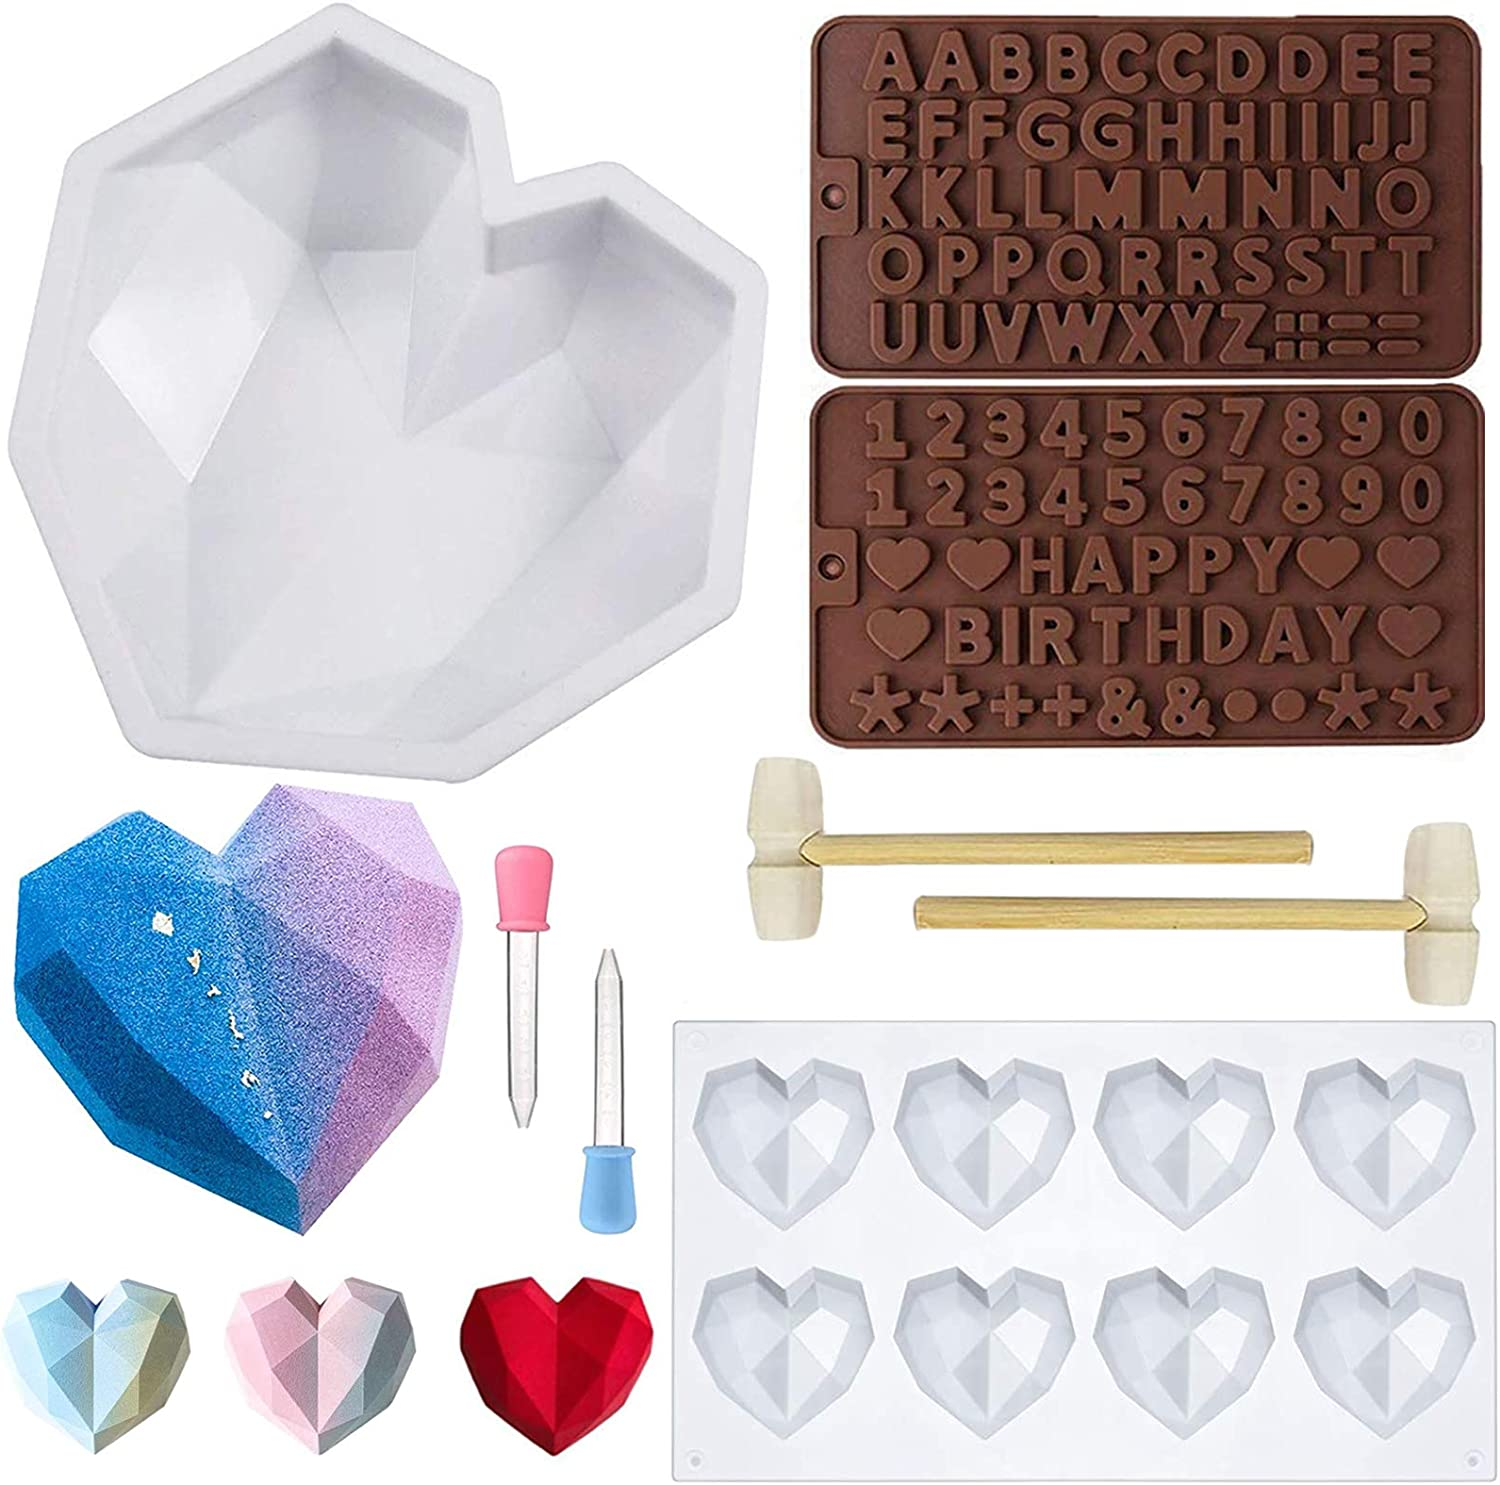 Stosts Diamond Heart Silicone Mousse Cake Mold, 8 Cavities Love Shape Chocolate Mold Tray, Letter and Number Non-sticky Baking Pan with 2 Mini Wooden Hammers Mallets 2 Droppers for Valentine Dessert